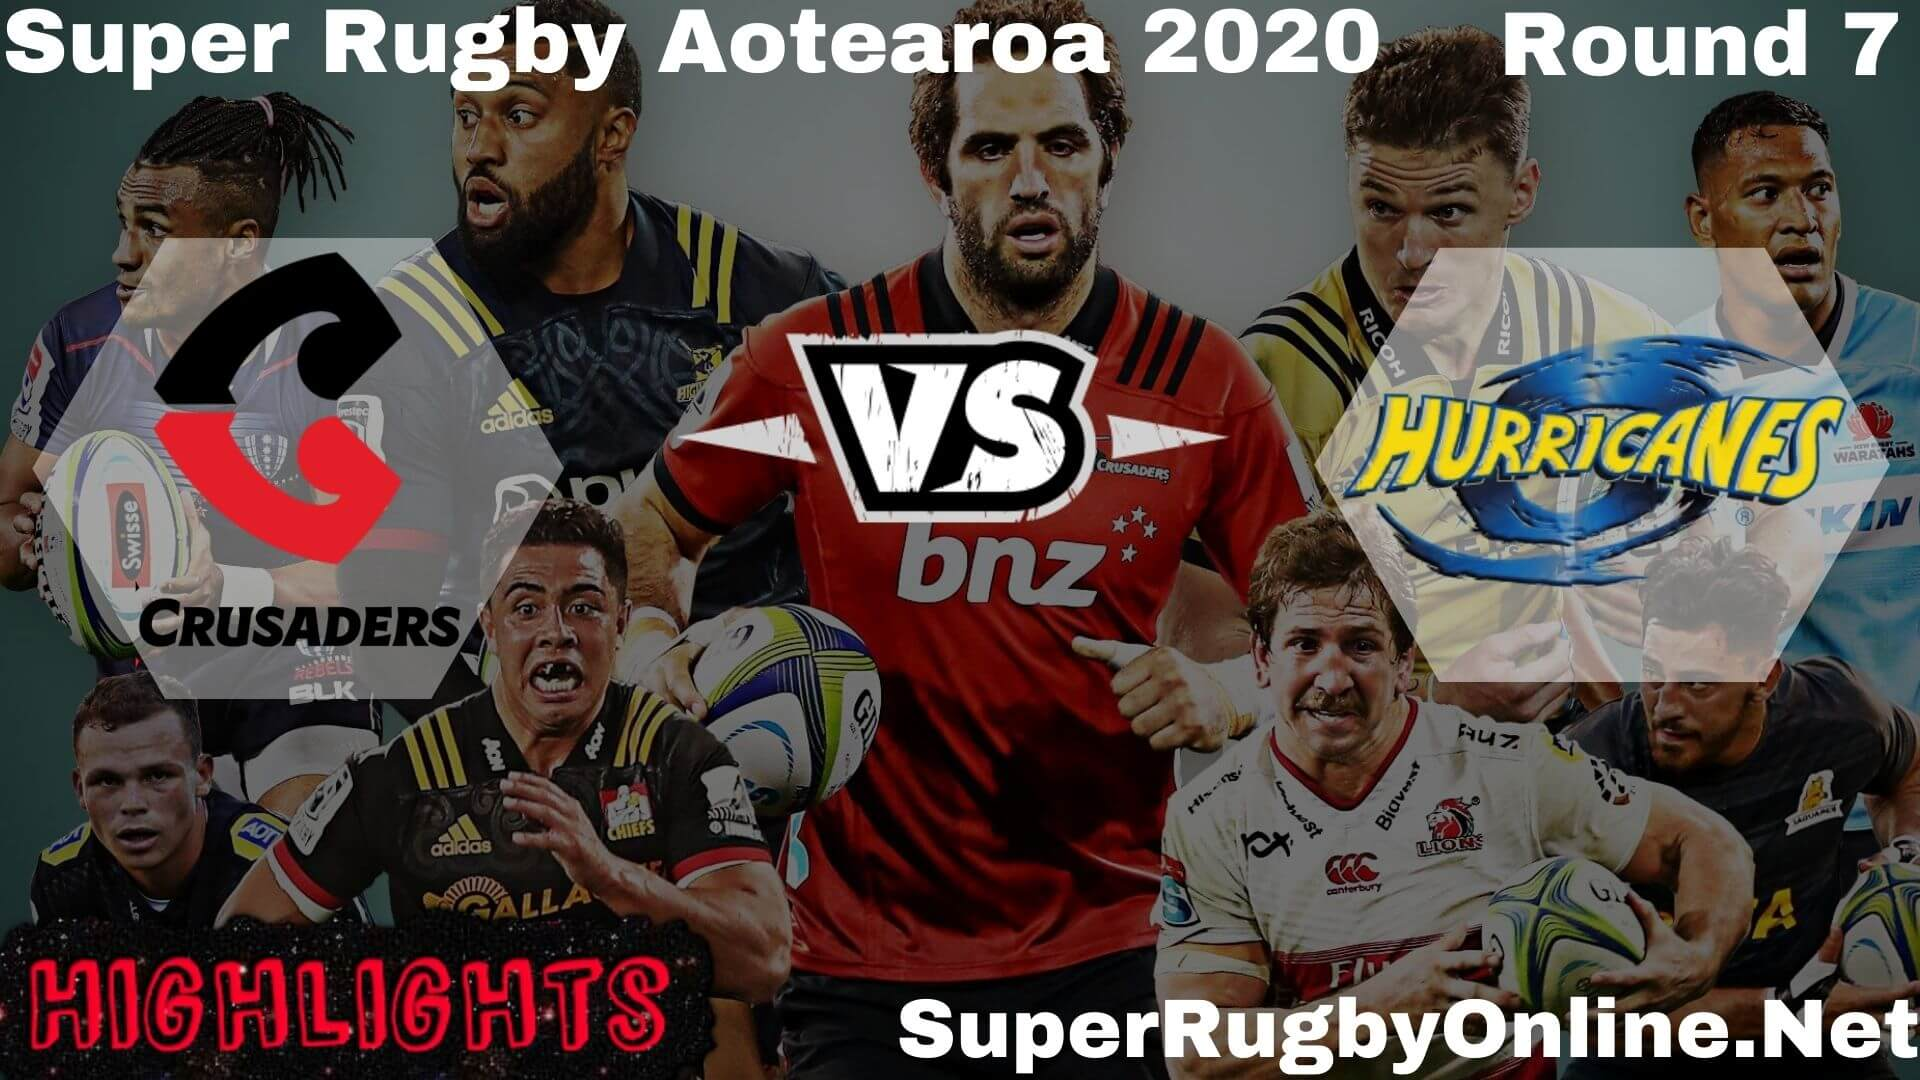 Crusaders Vs Hurricanes Rd 7 Highlights 2020 Super Rugby Aotearao